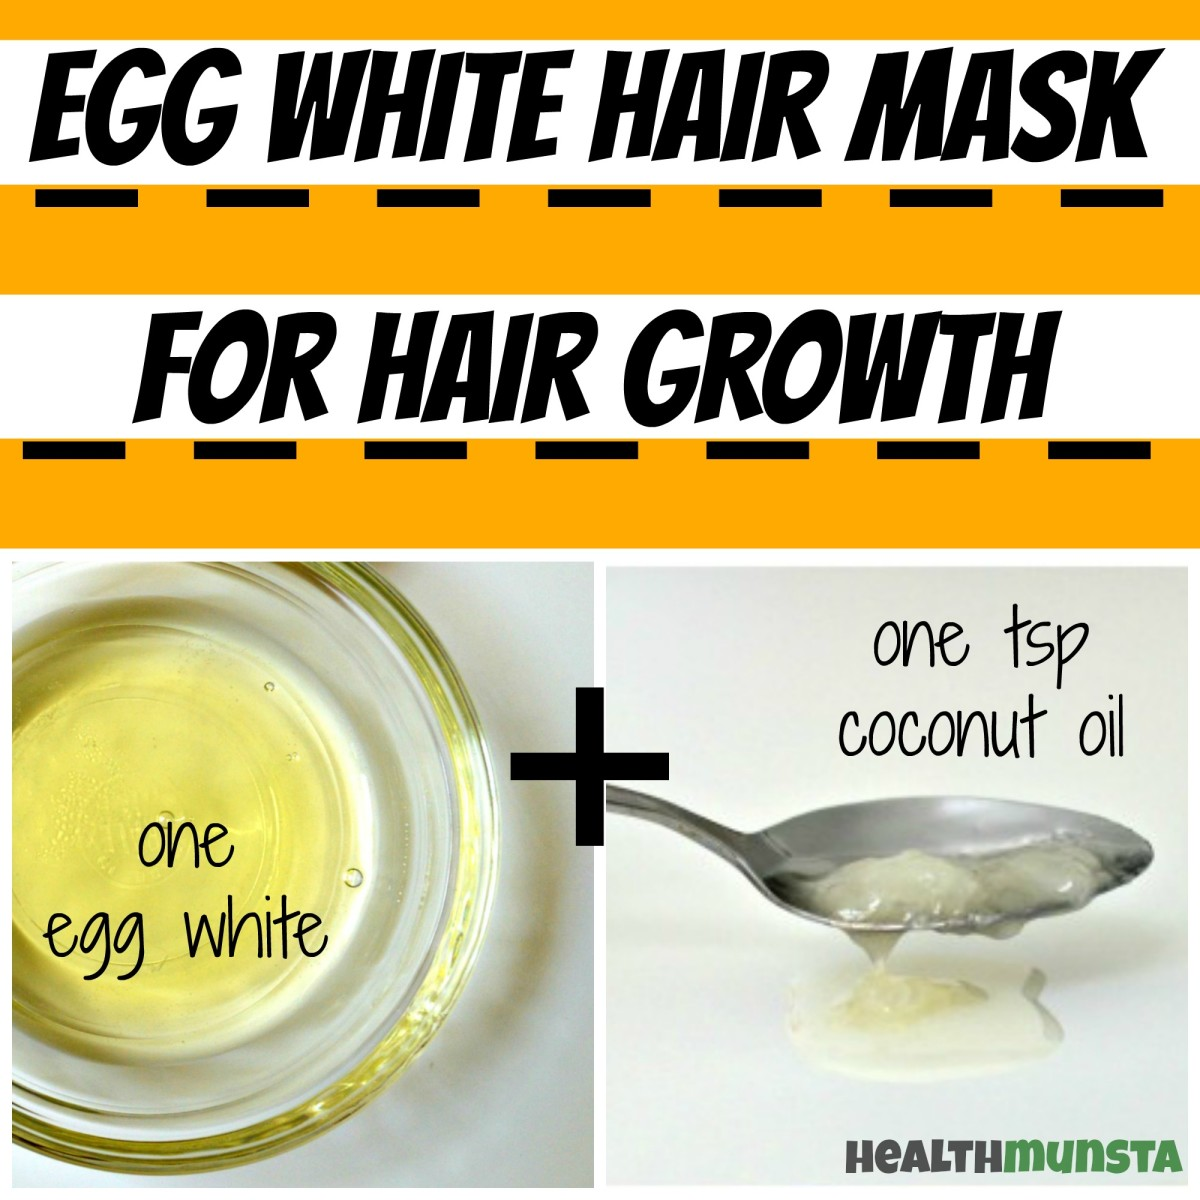 Combine the nourishing coconut oil with protein-rich egg white to boost hair growth